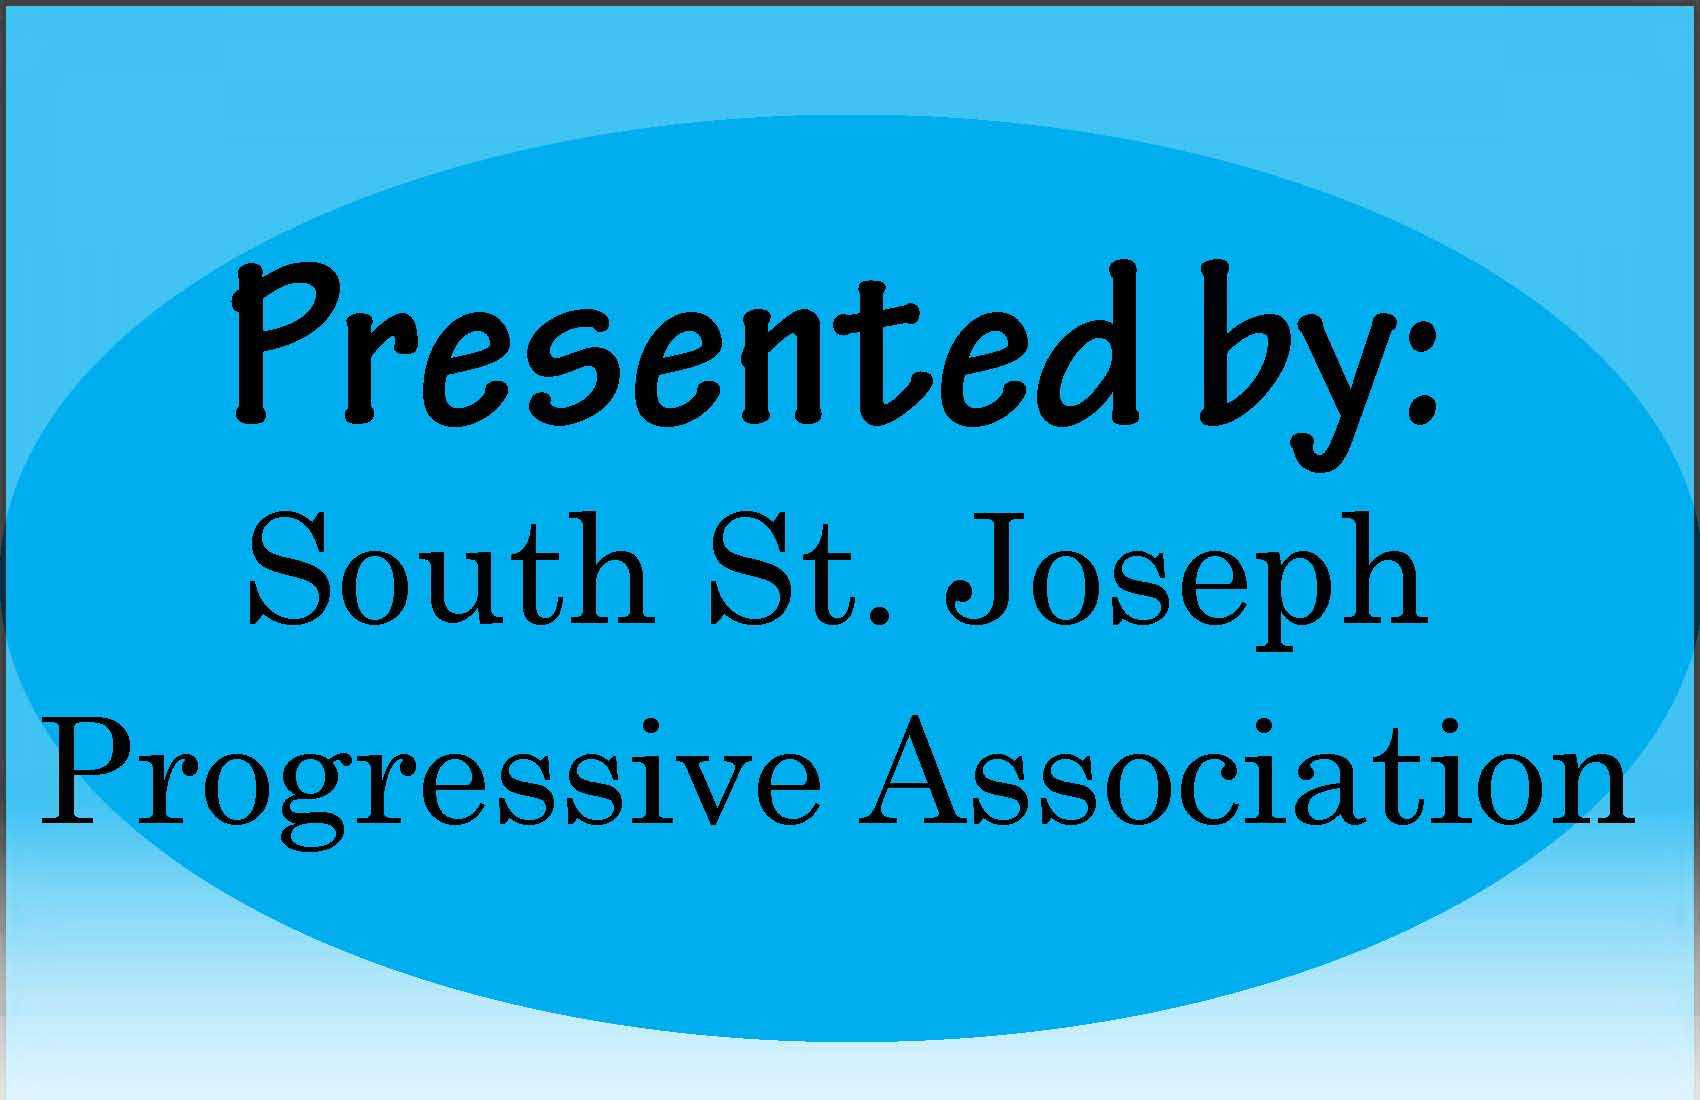 St. Joseph Progressive Association